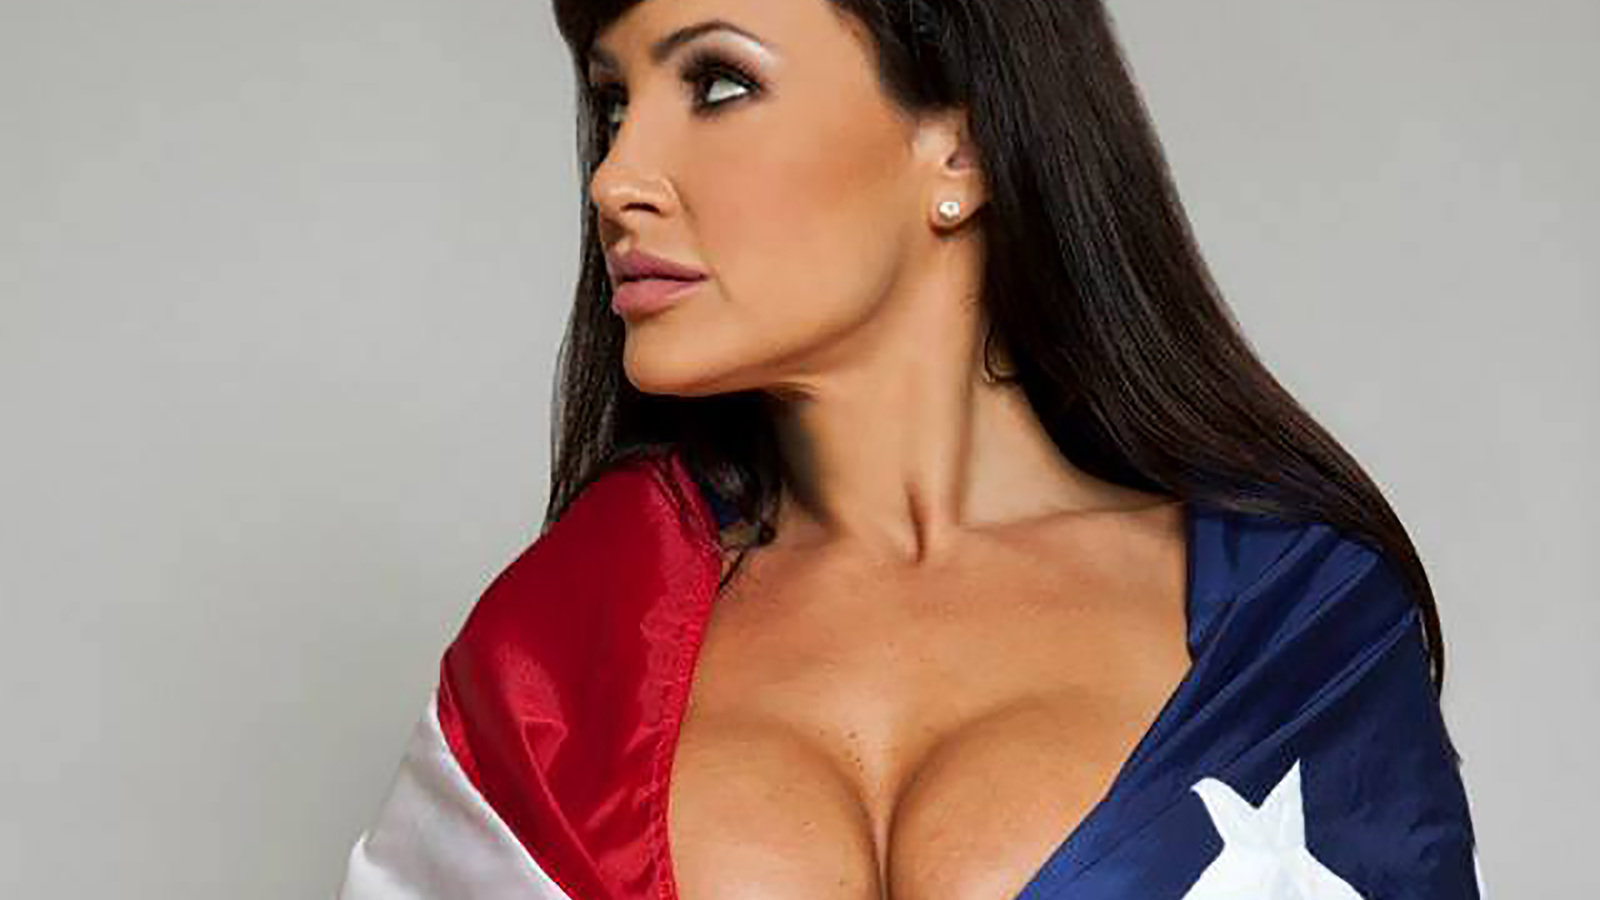 Petition · Vote For Lisa Ann For President Of The United